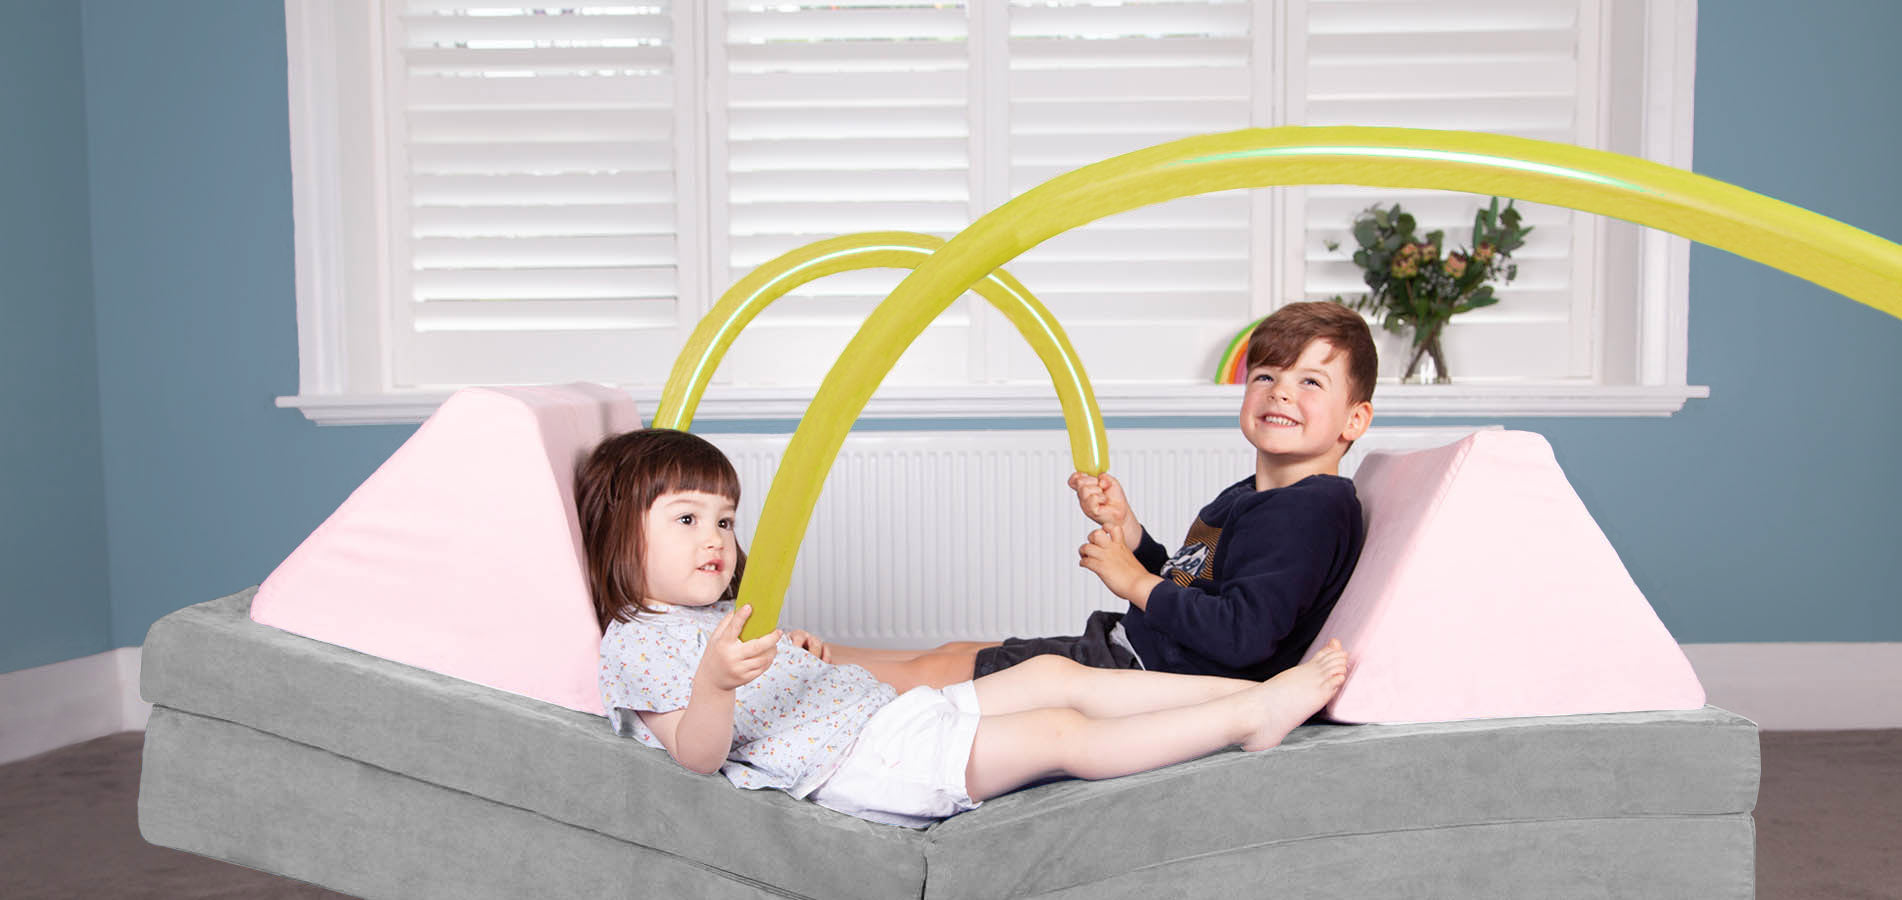 Relax in comfort after creating limitless possibilities with the ultimate Australian Made Play Sofa and pillows by Funsquare. The best kids furniture and couch for your home! Great for creative, interactive and open ended play.